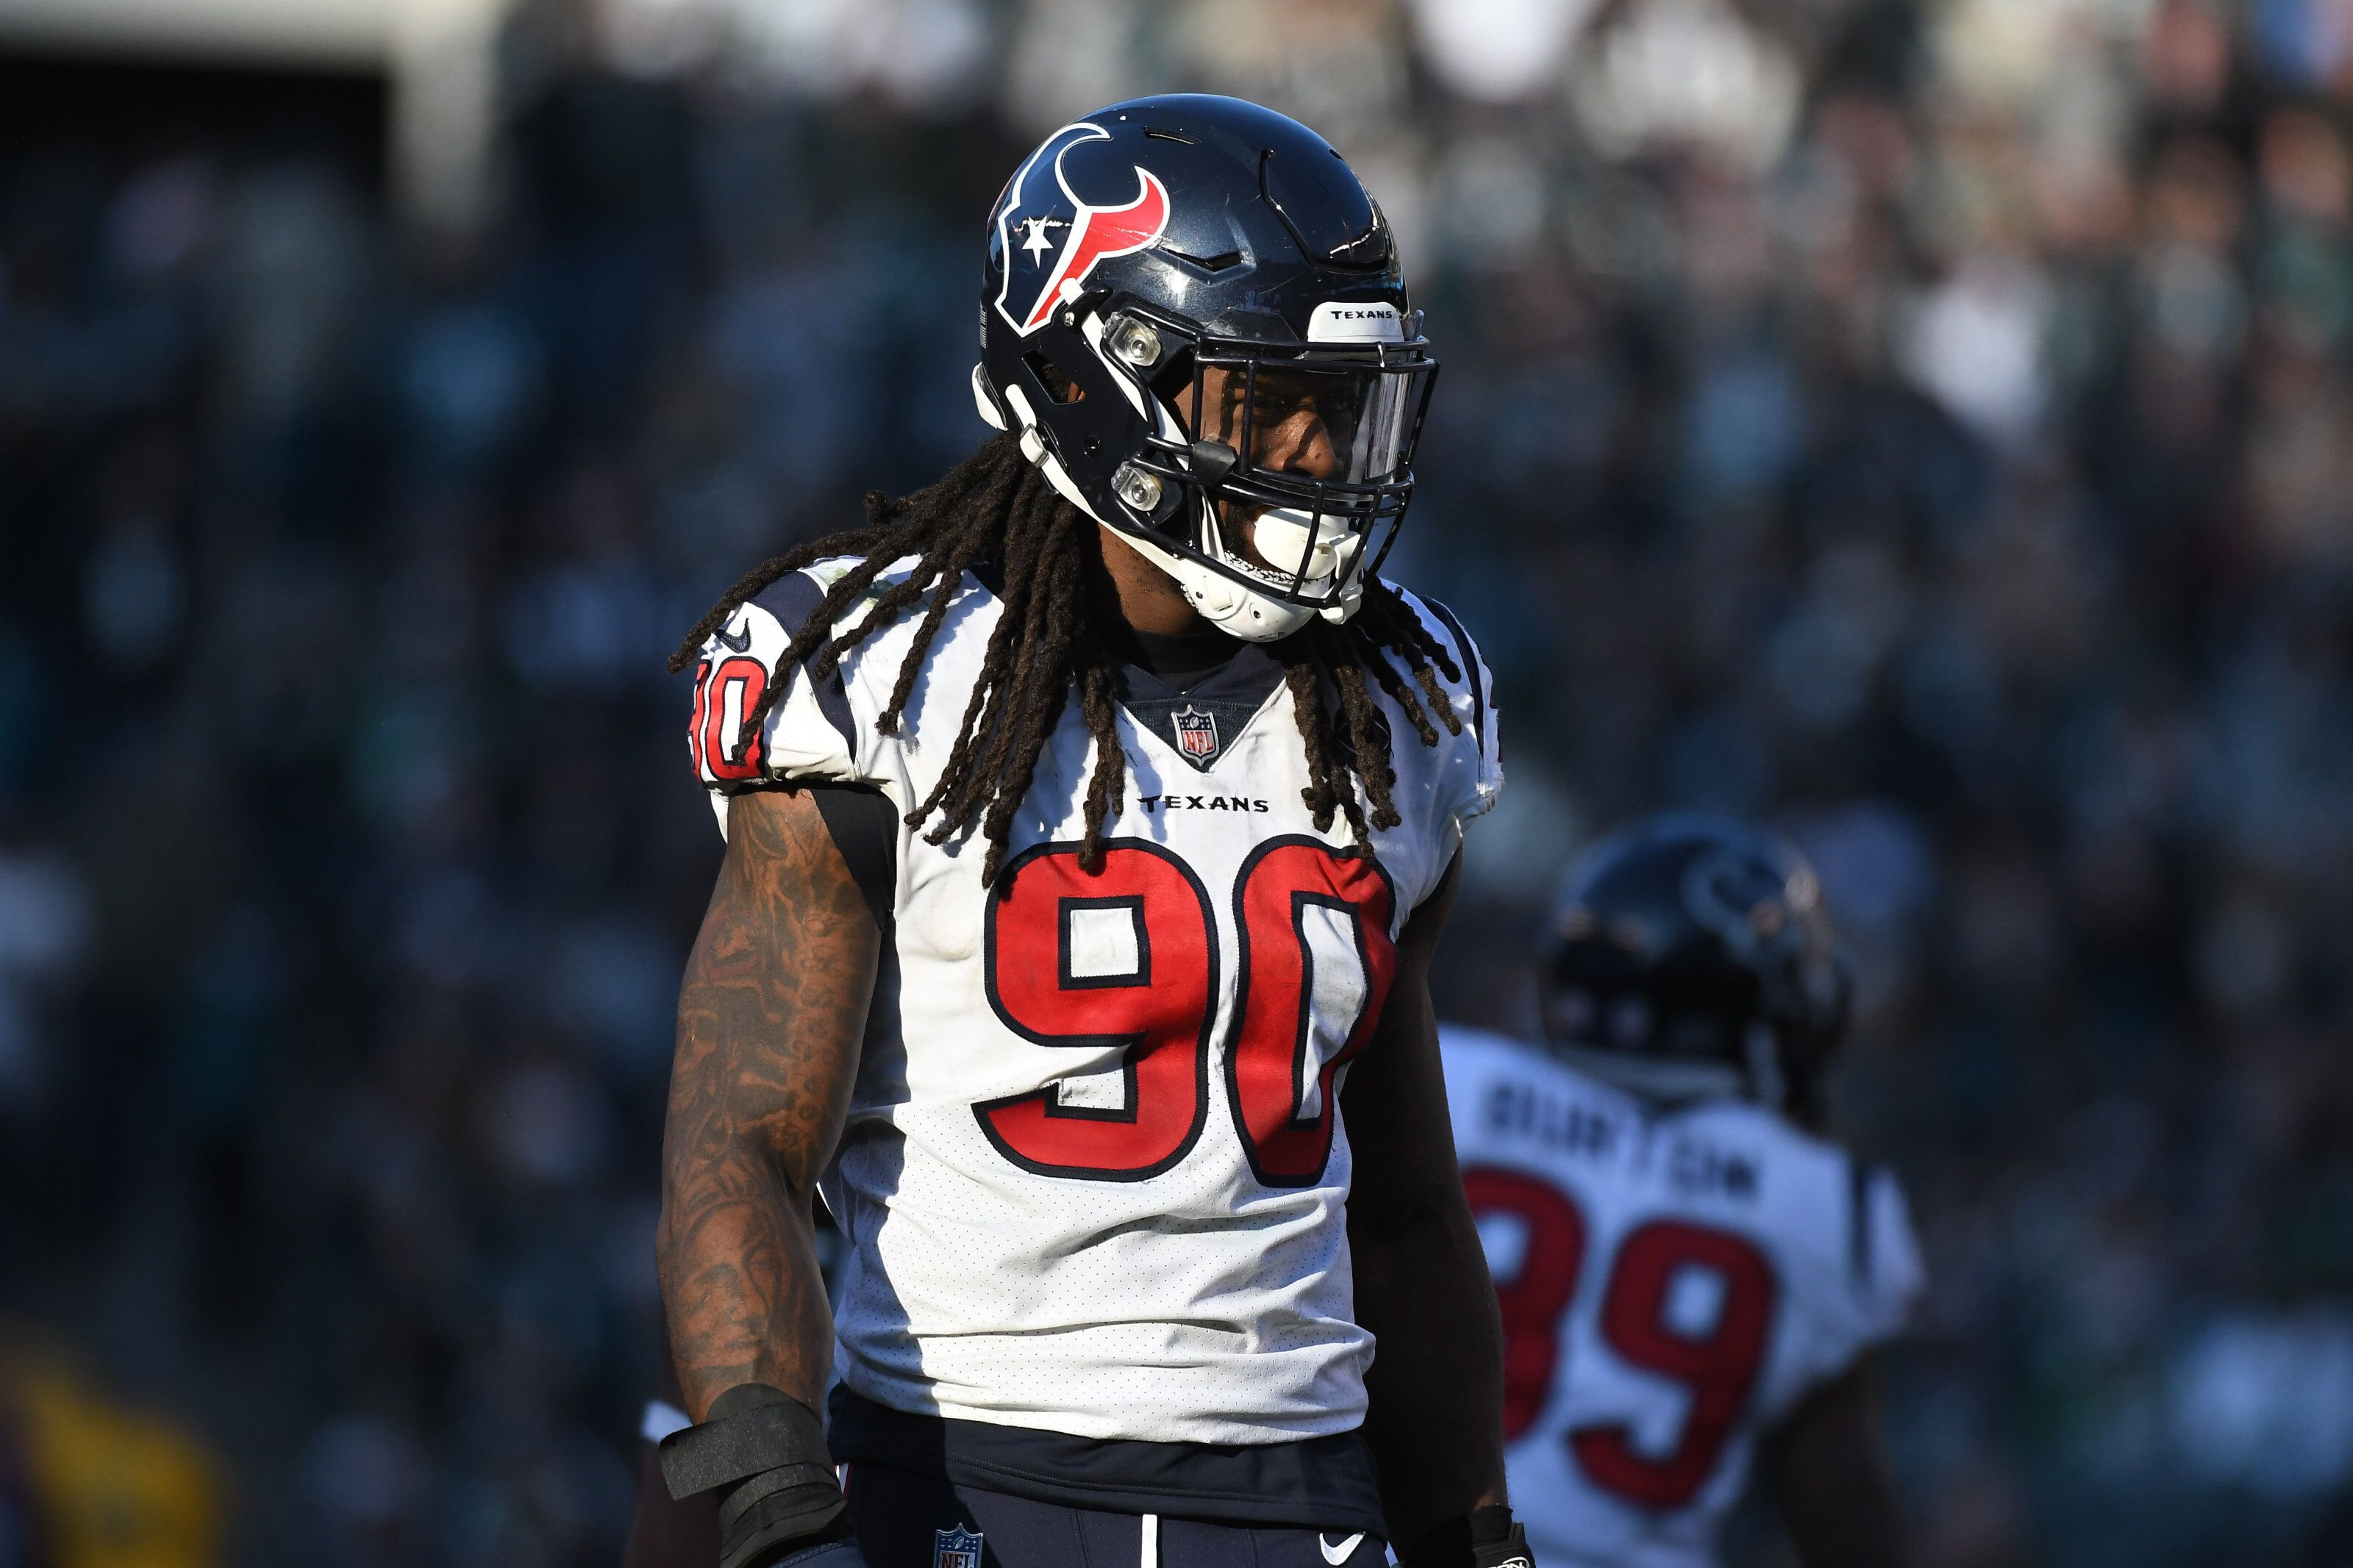 PHILADELPHIA, PA - DECEMBER 23: Houston Texans Linebacker Jadeveon Clowney (90) looks on during the game between the Houston Texans and the Philadelphia Eagles on December 23, 2018, at Lincoln Financial Field in Philadelphia,PA. (Photo by Andy Lewis/Icon Sportswire via Getty Images)